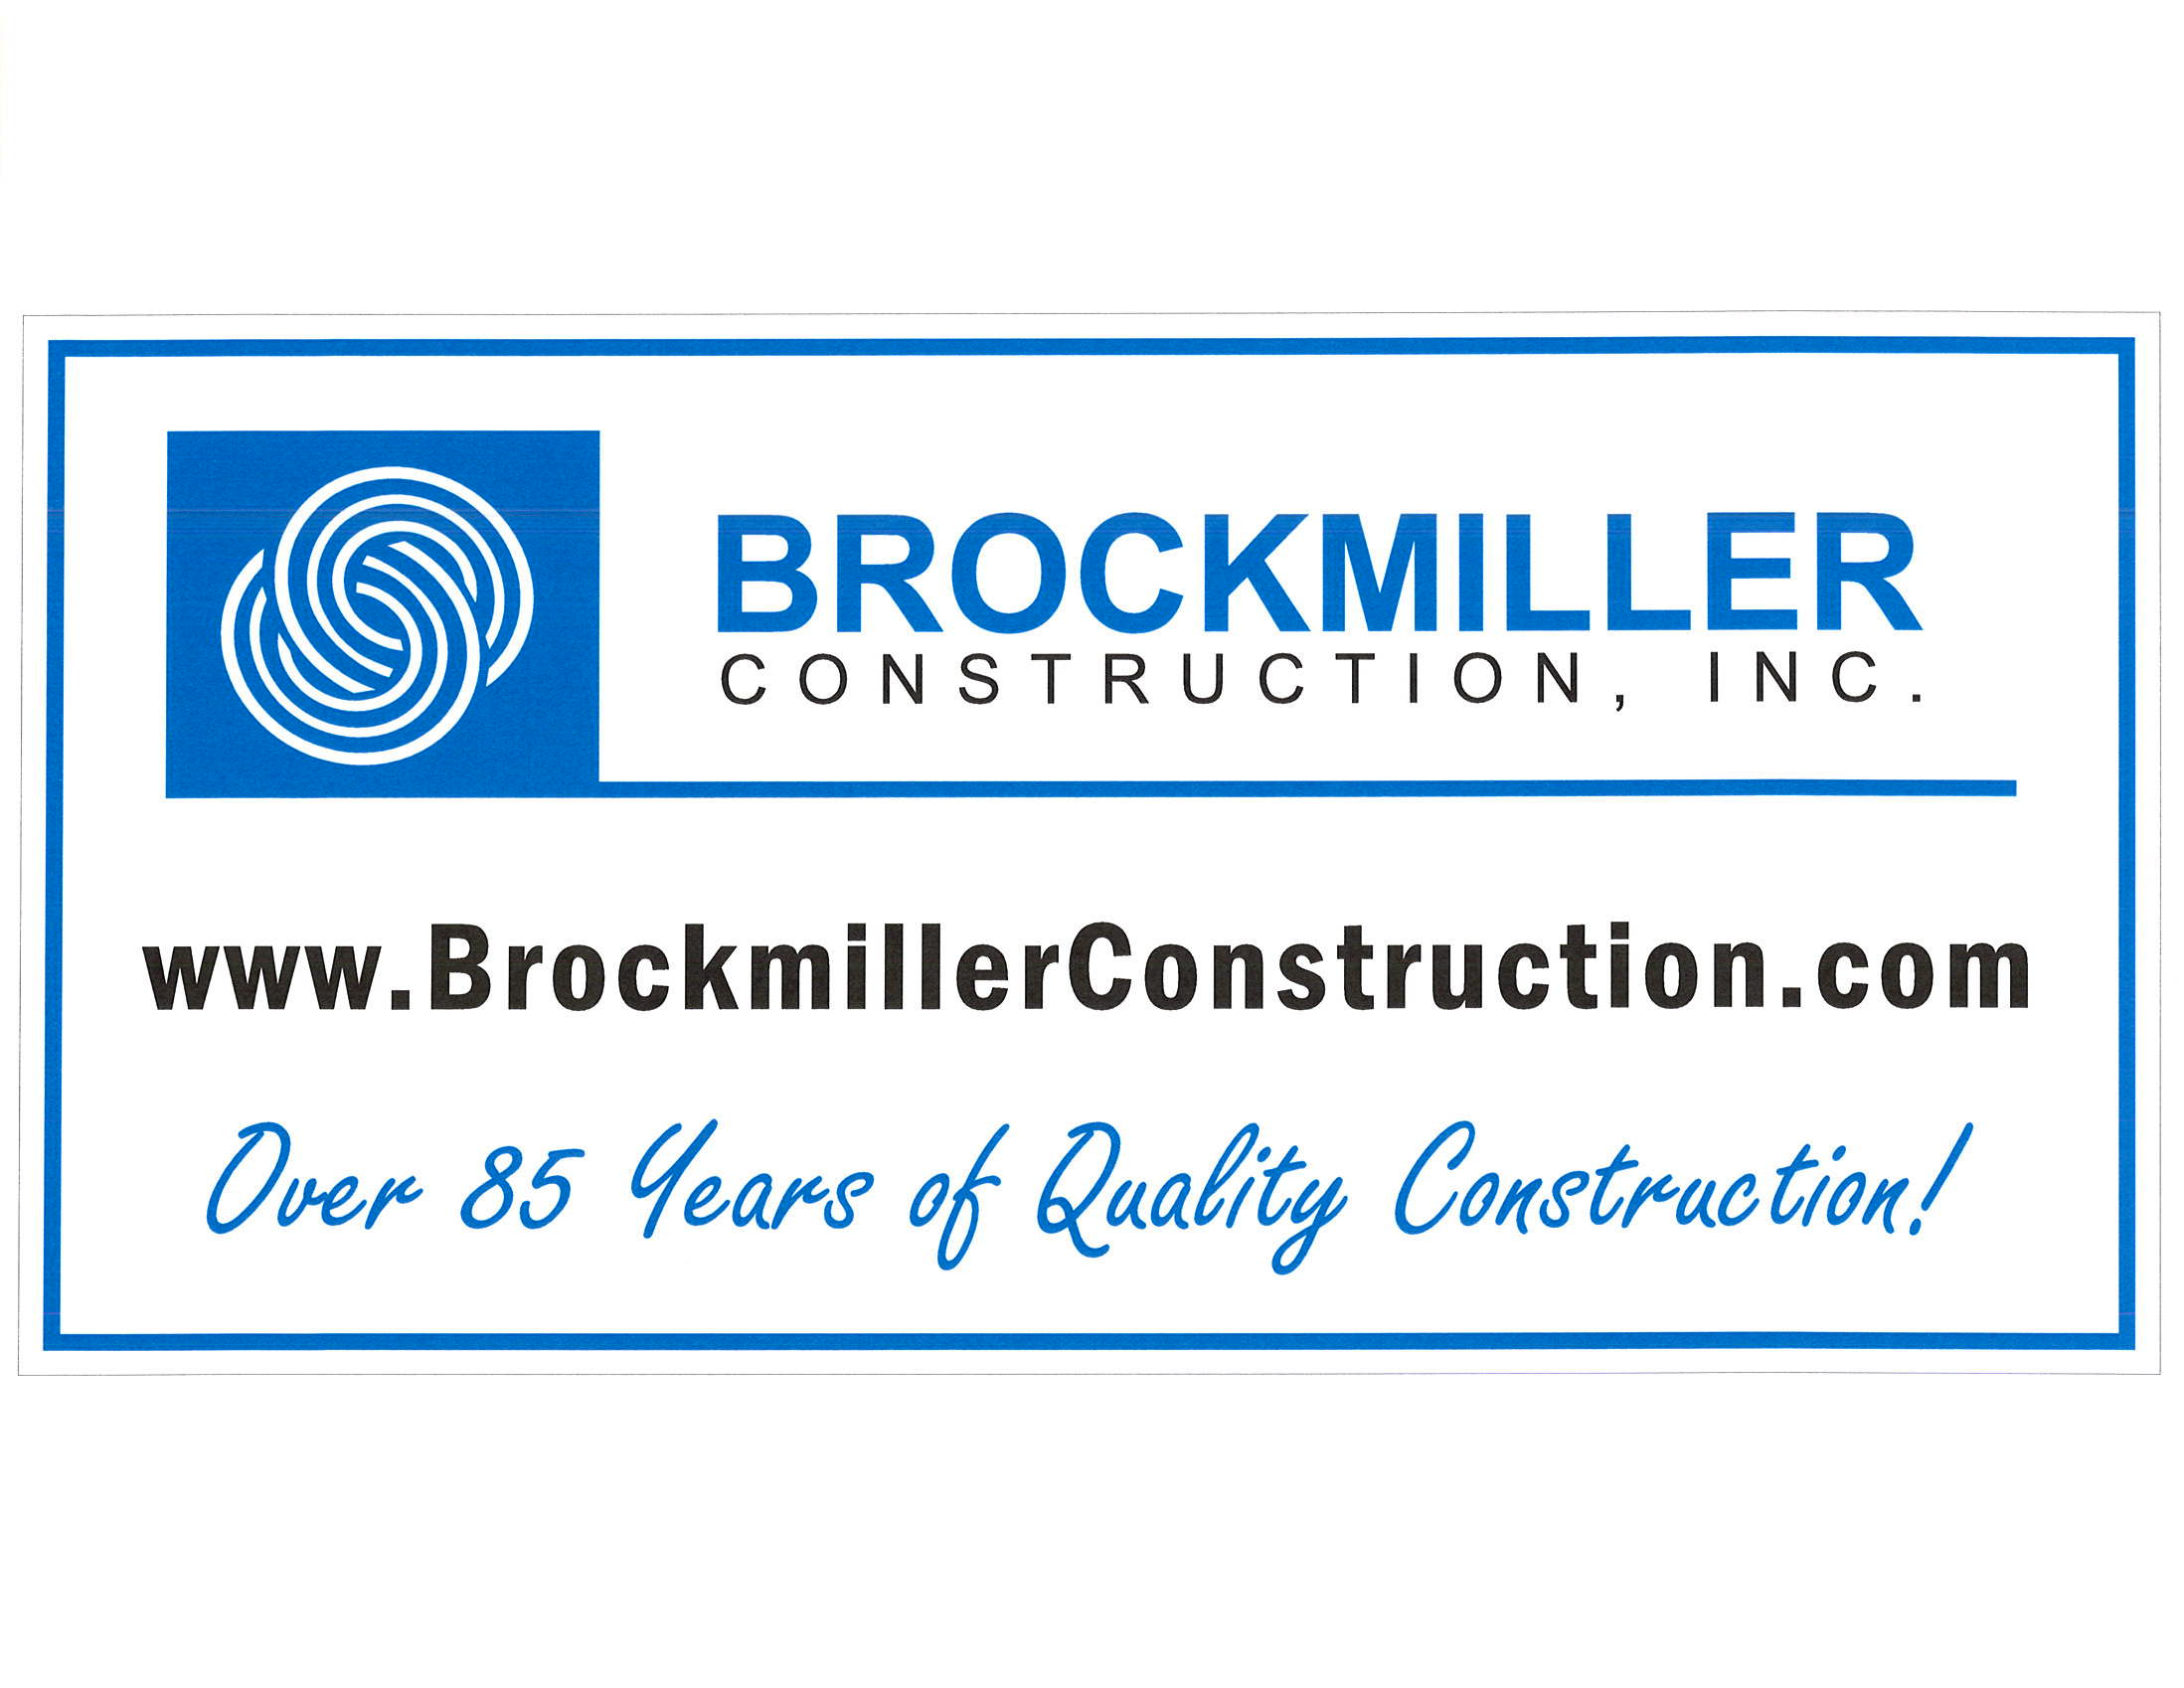 Brockmiller Construction, Inc.